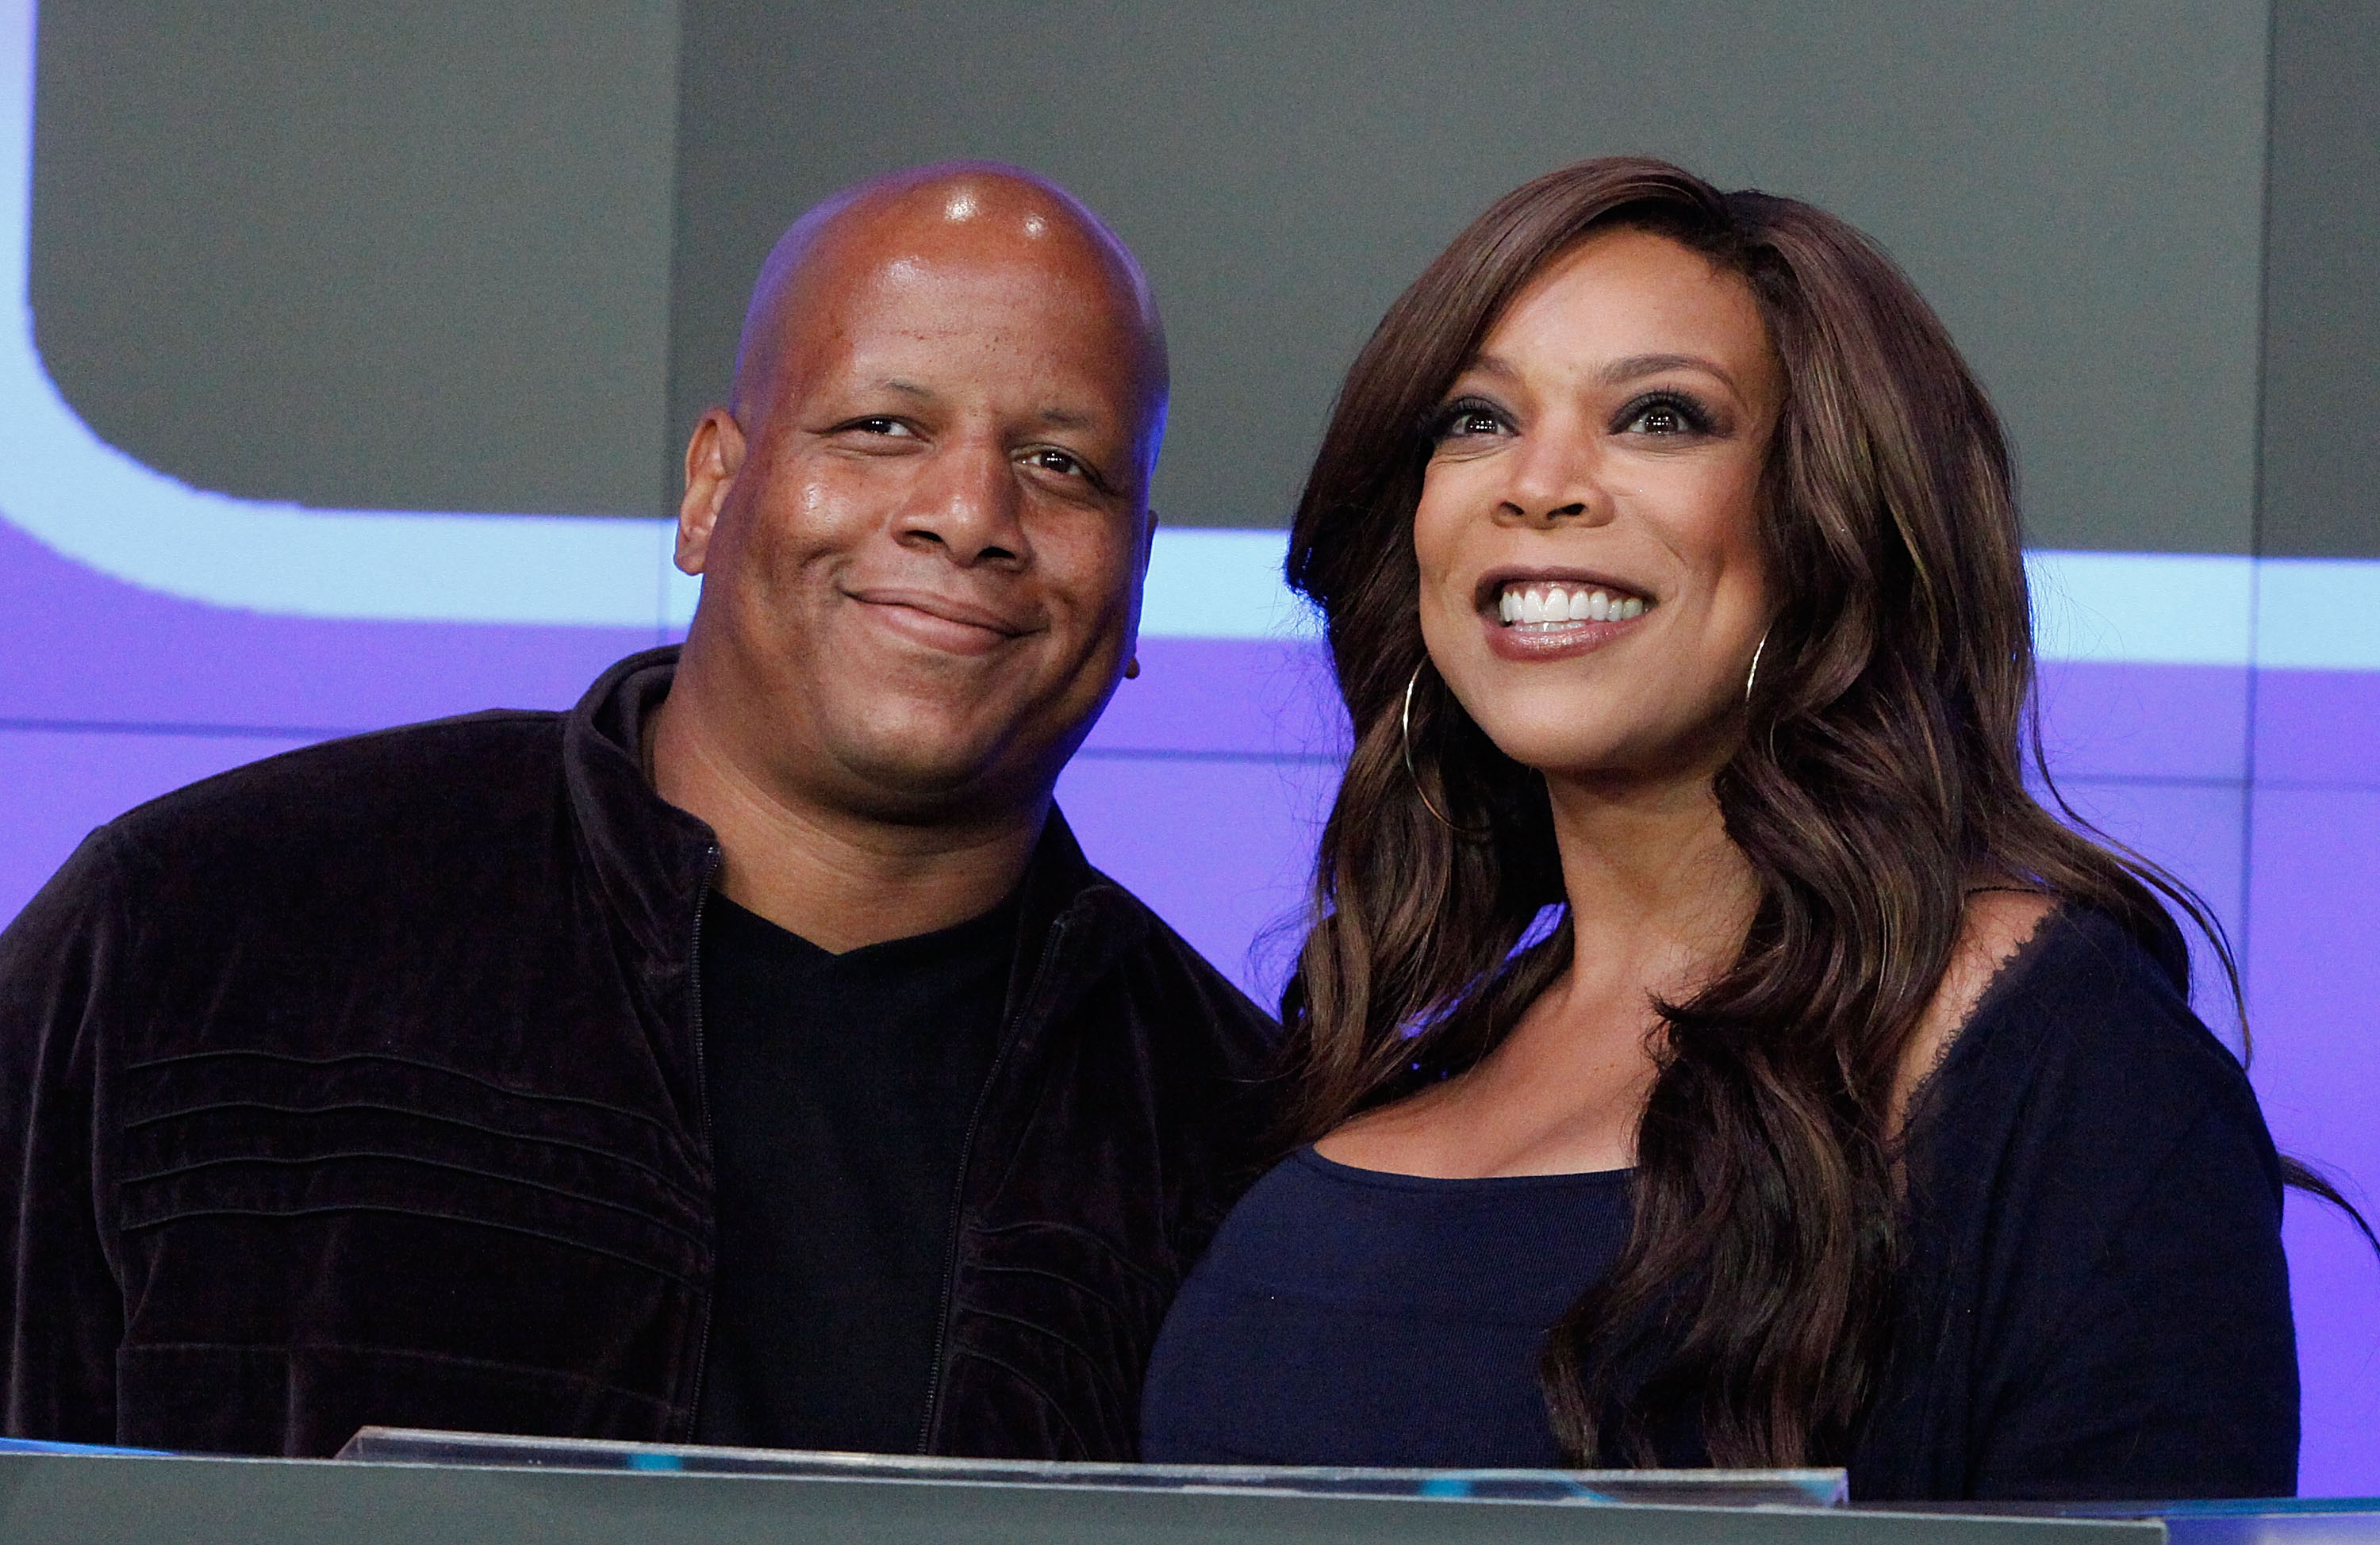 Kevin Hunter and Wendy Williams at the NASDAQ MarketSite on August 25, 2010. | Photo: Getty Images